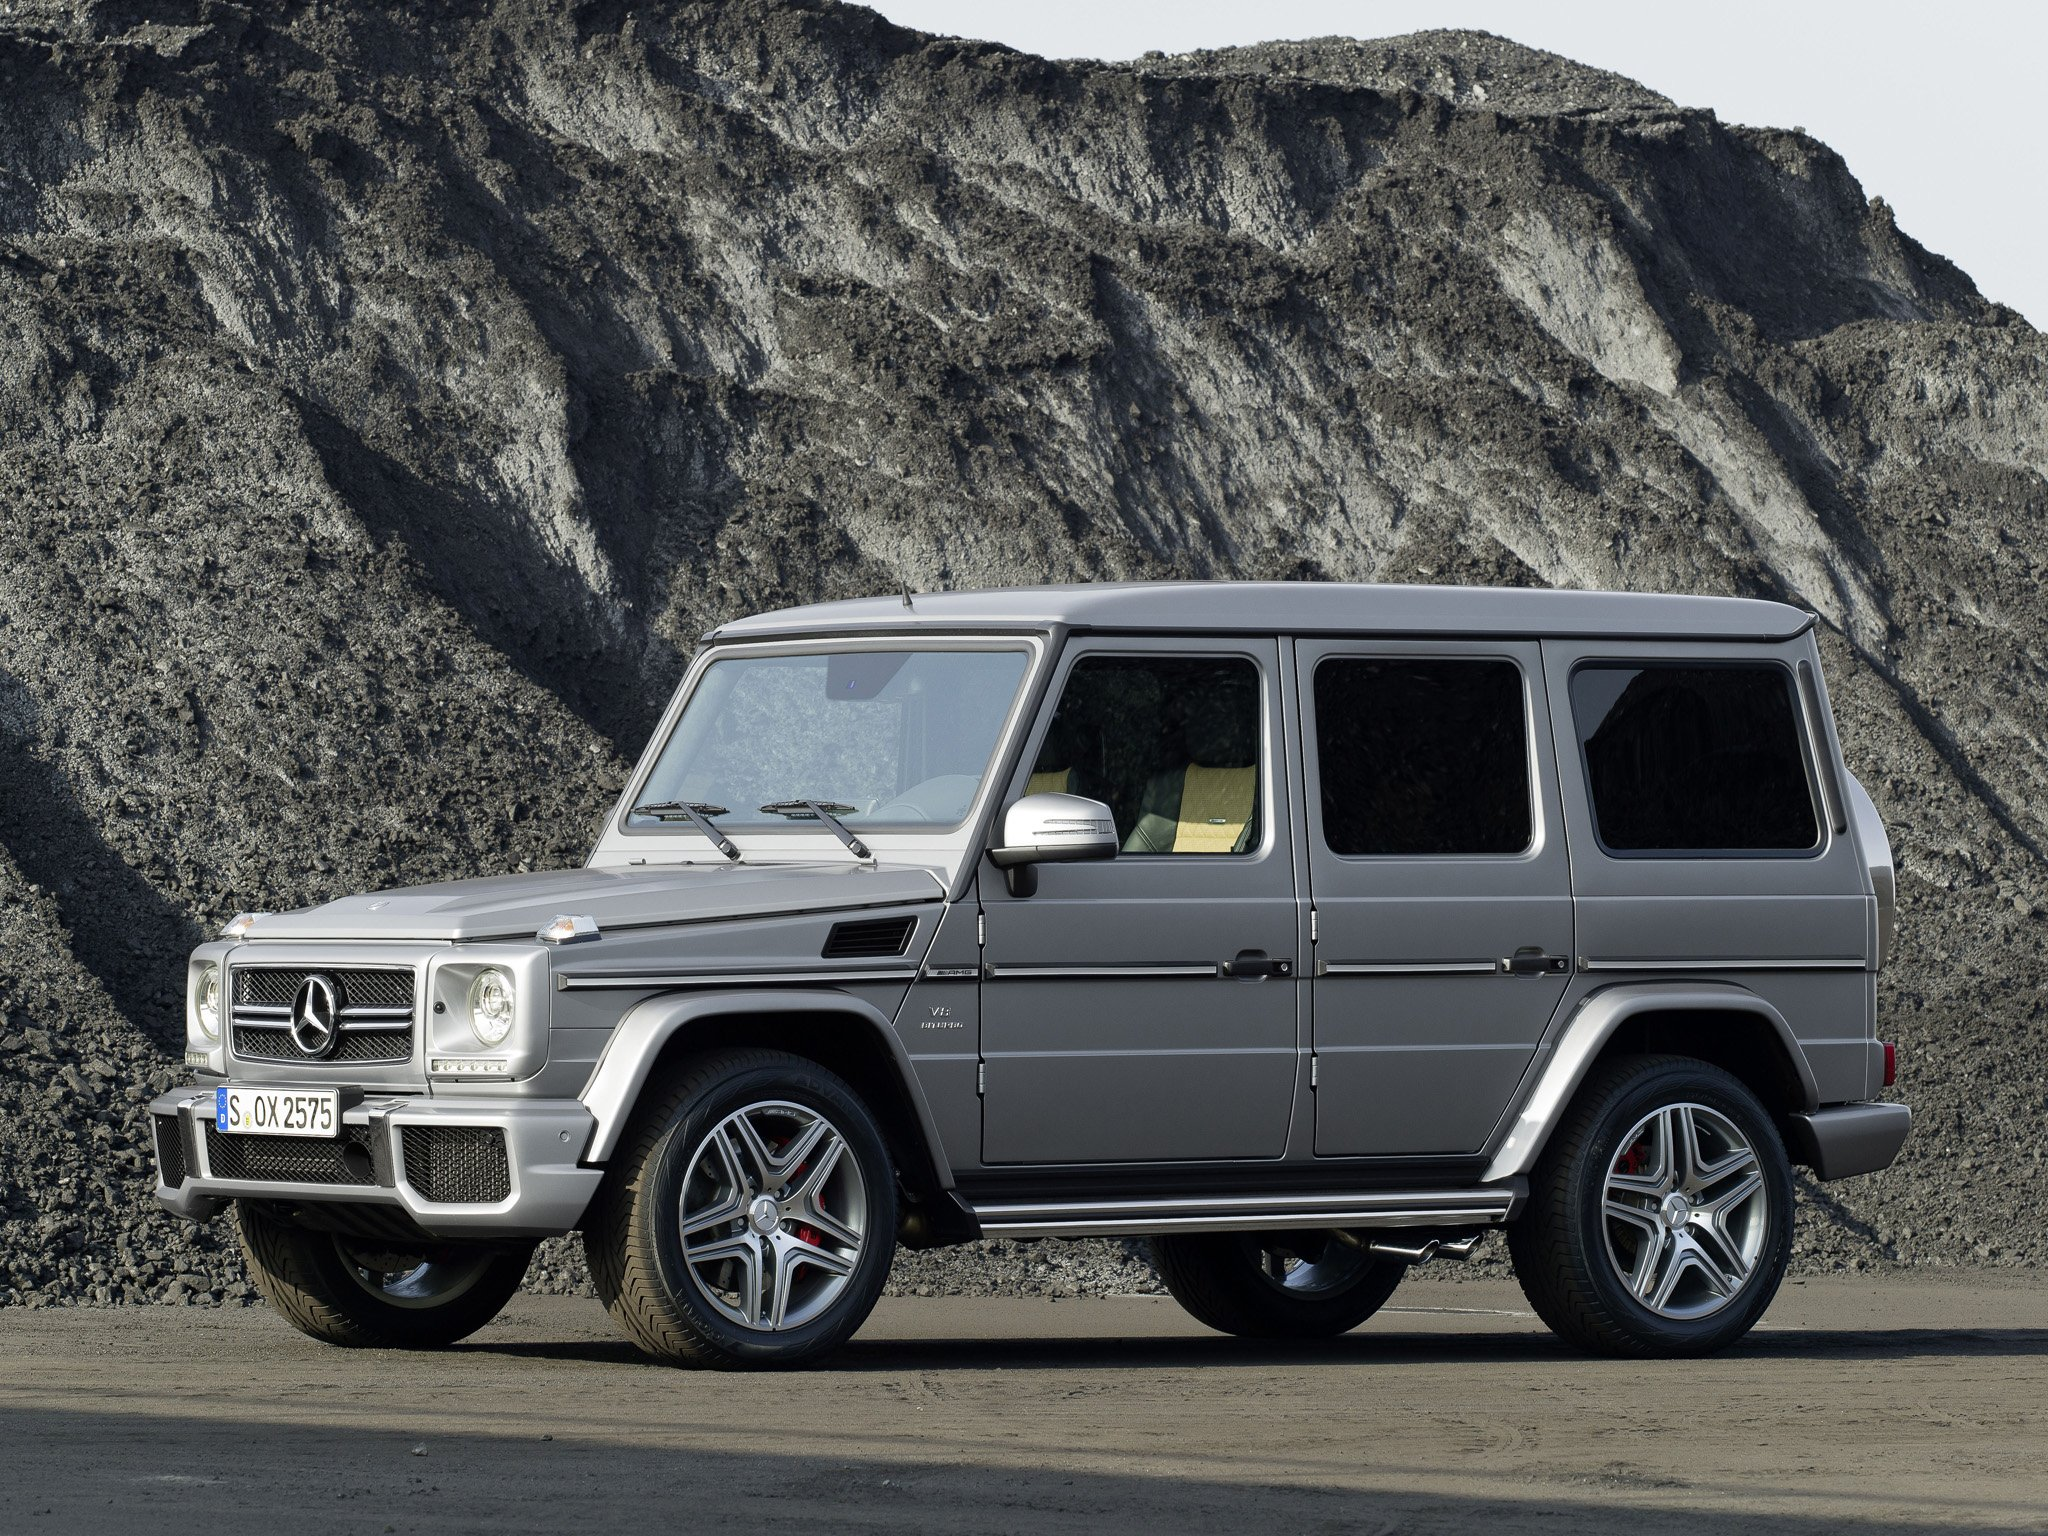 mercedes benz g63 amg w463 2012 cars 4wd 4x4 all road wallpaper 2048x1536 712368 wallpaperup. Black Bedroom Furniture Sets. Home Design Ideas